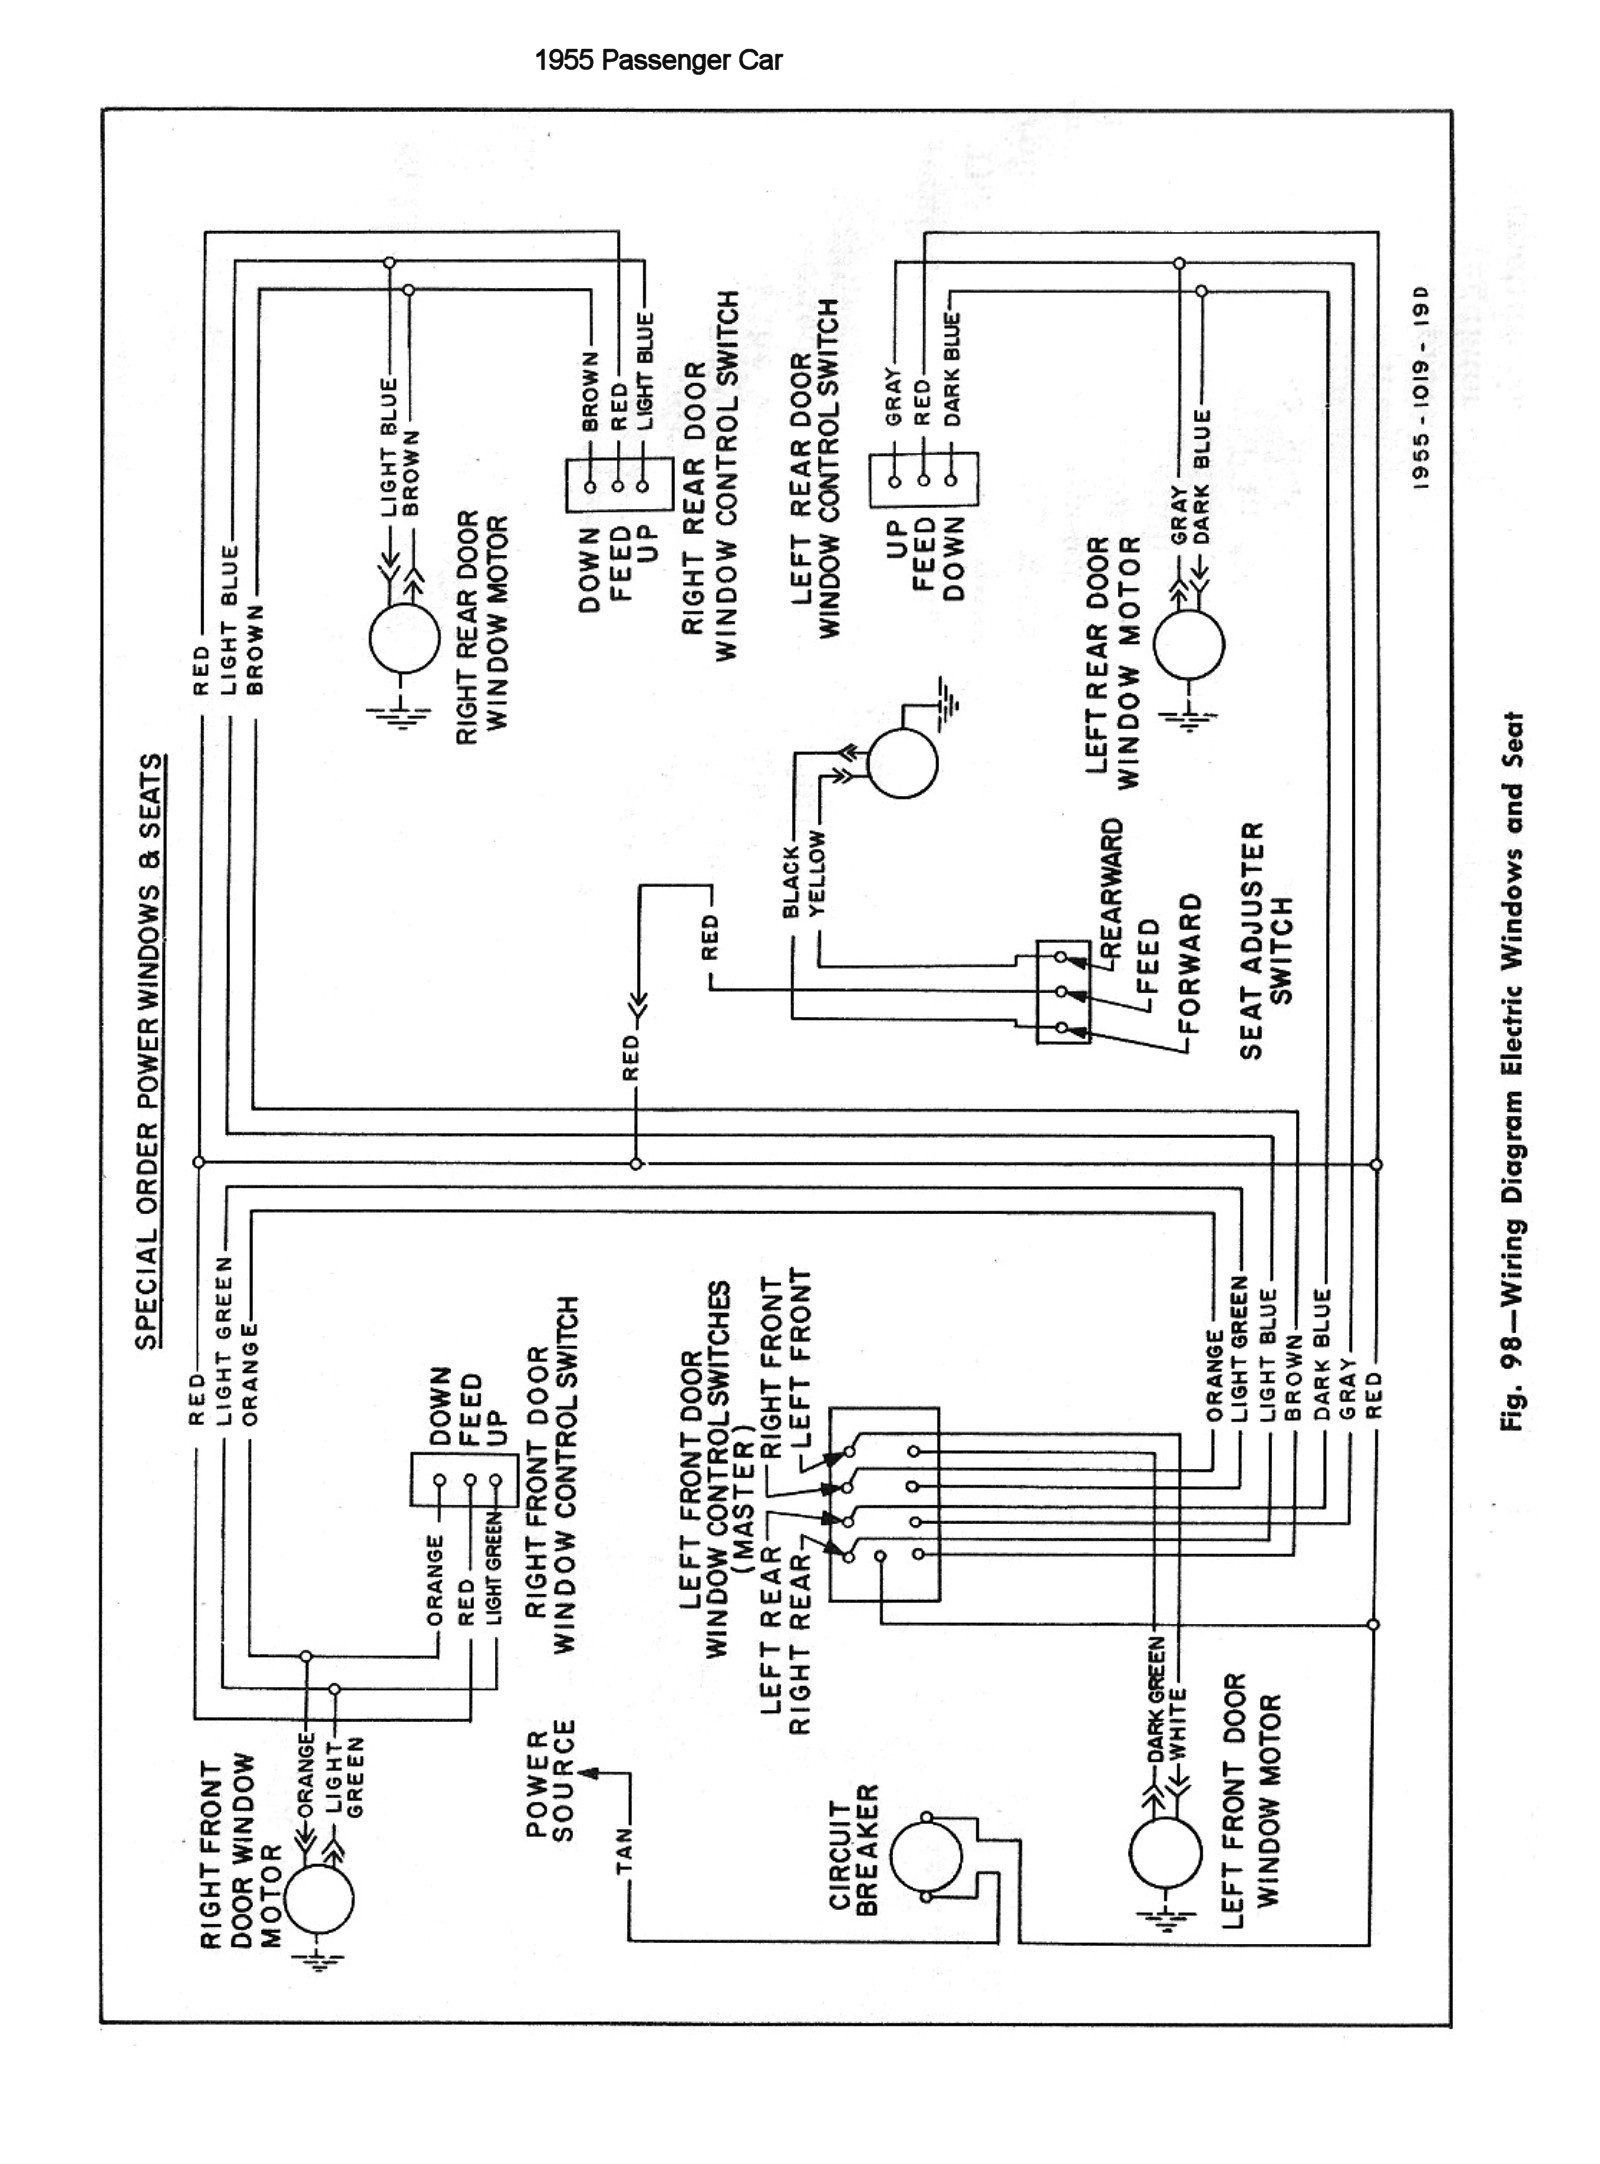 1955 chevy turn signal wiring diagram wiringdiagram org1955 chevy wiring 10 [ 1600 x 2164 Pixel ]